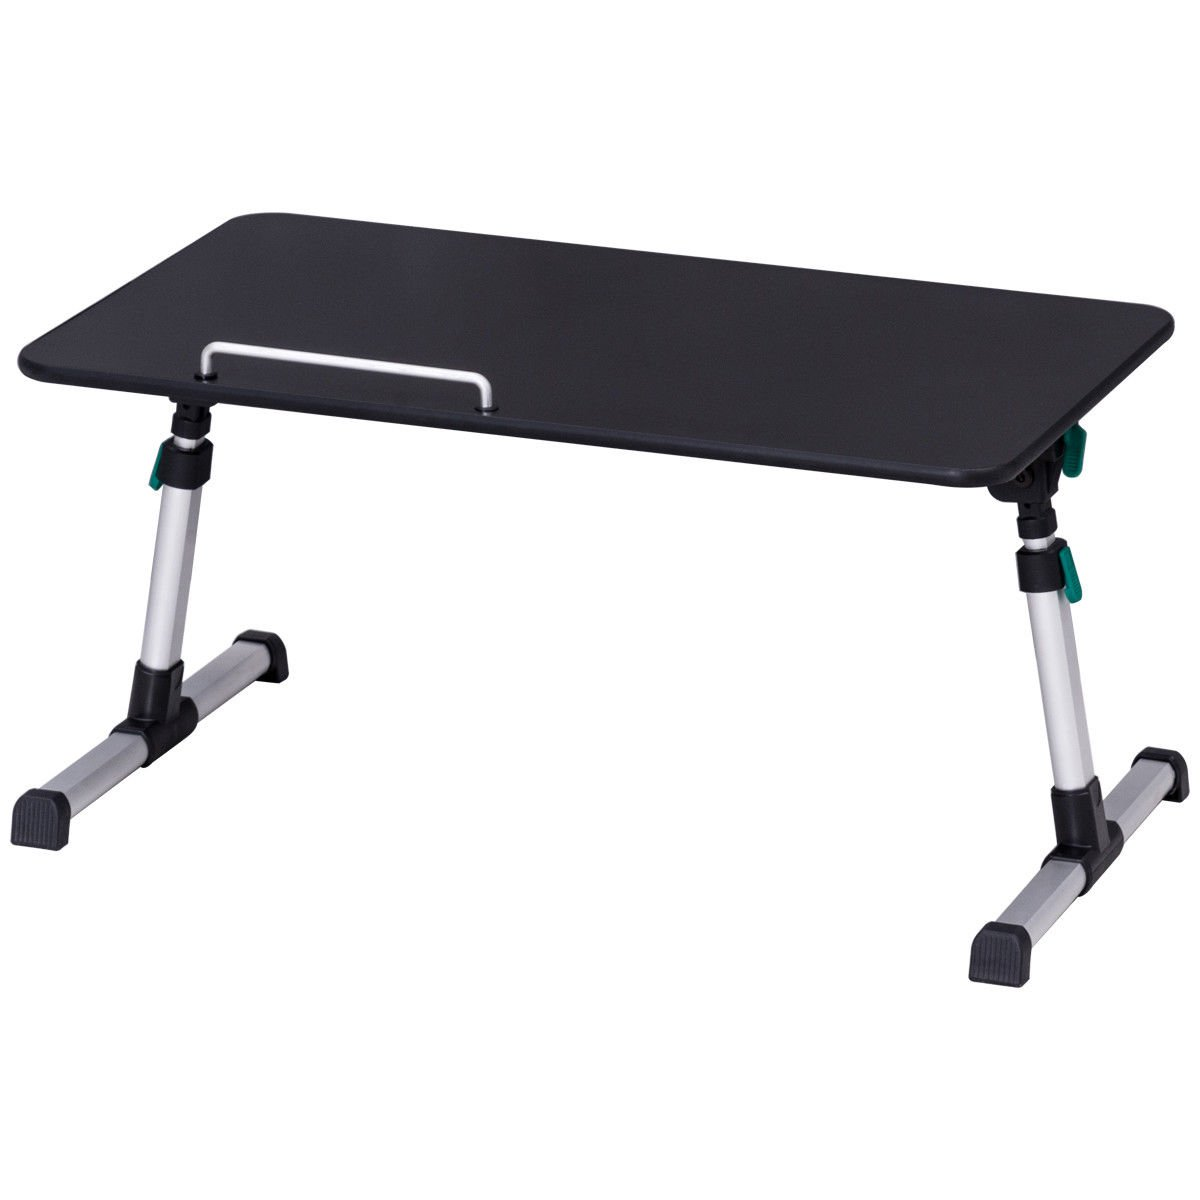 Caraya Height Adjustable Laptop Bed Tray Table Standing Desk Breakfast Tray Portable Black